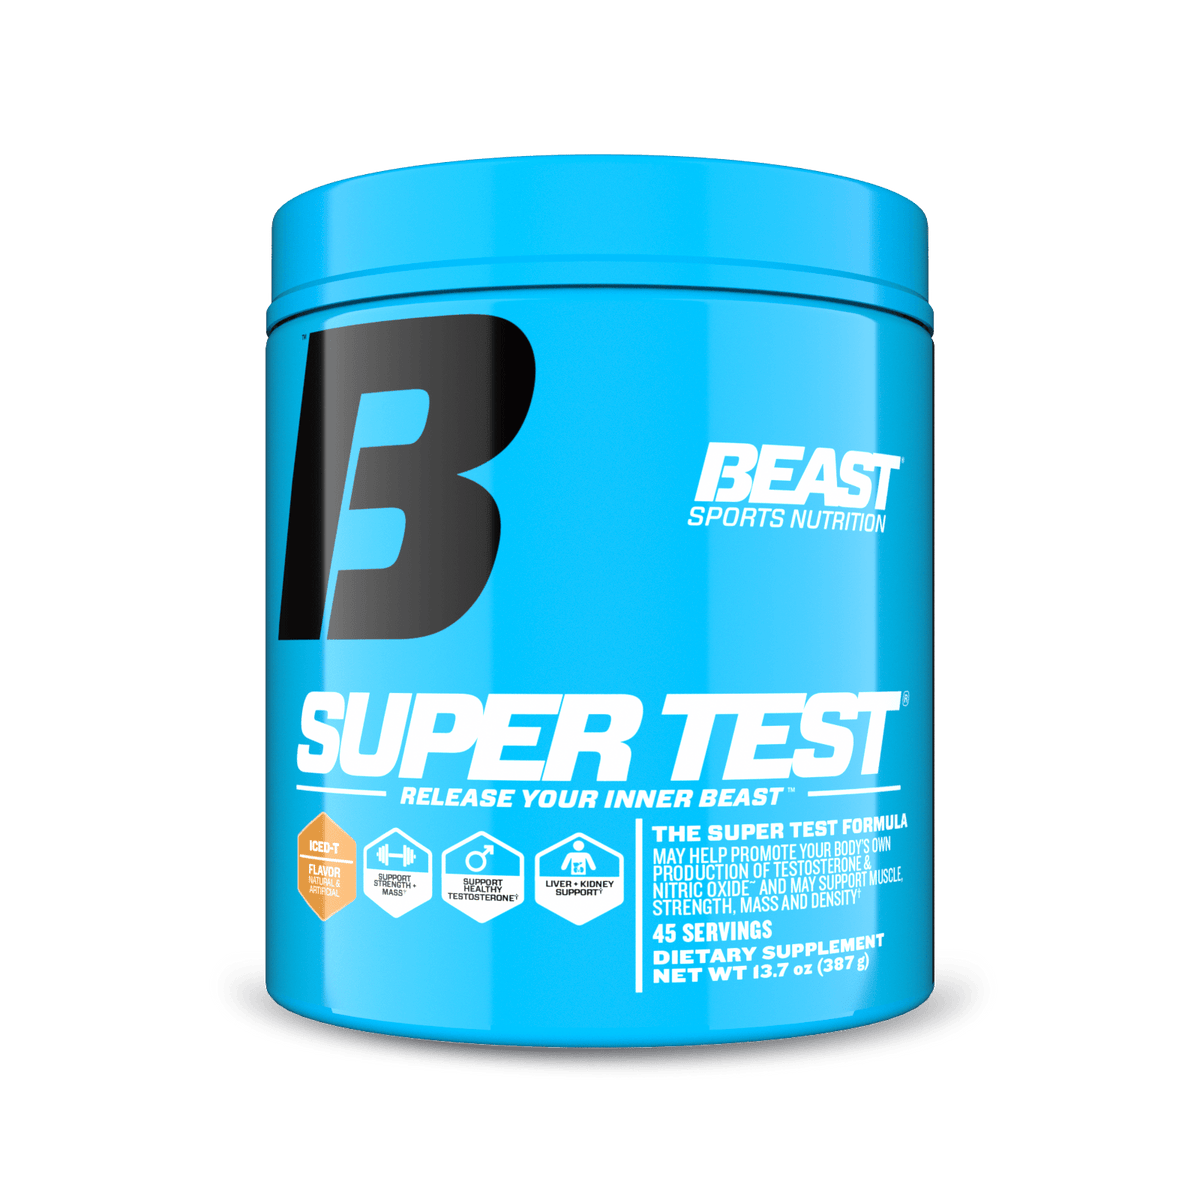 SUPER TEST® - Beast Sports Nutrition